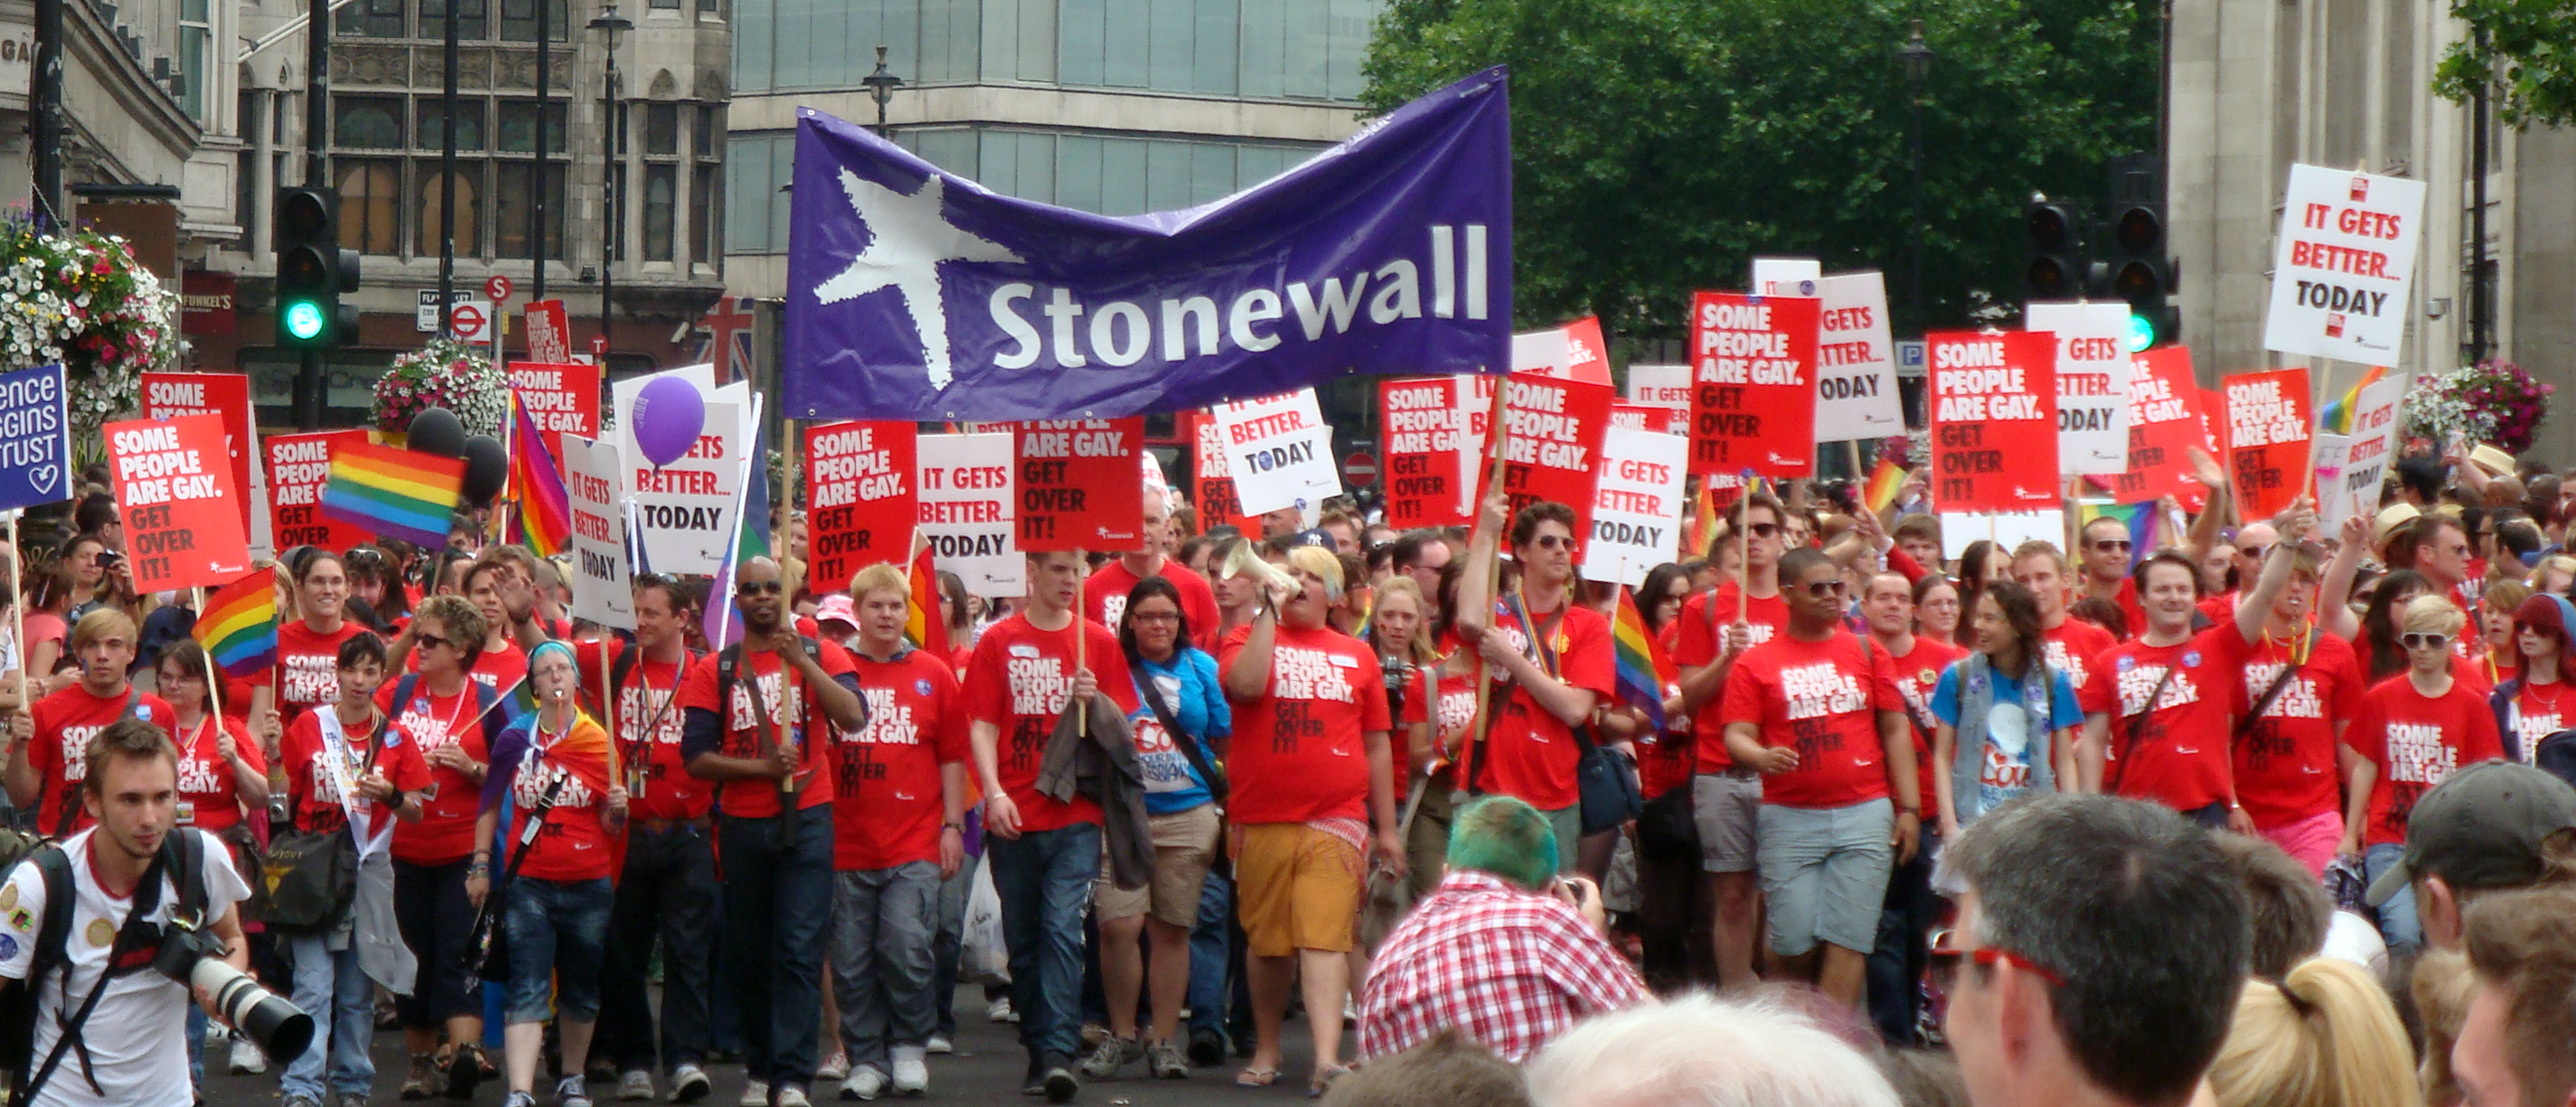 the gay rights nonprofit Stonewall estimates it' s more